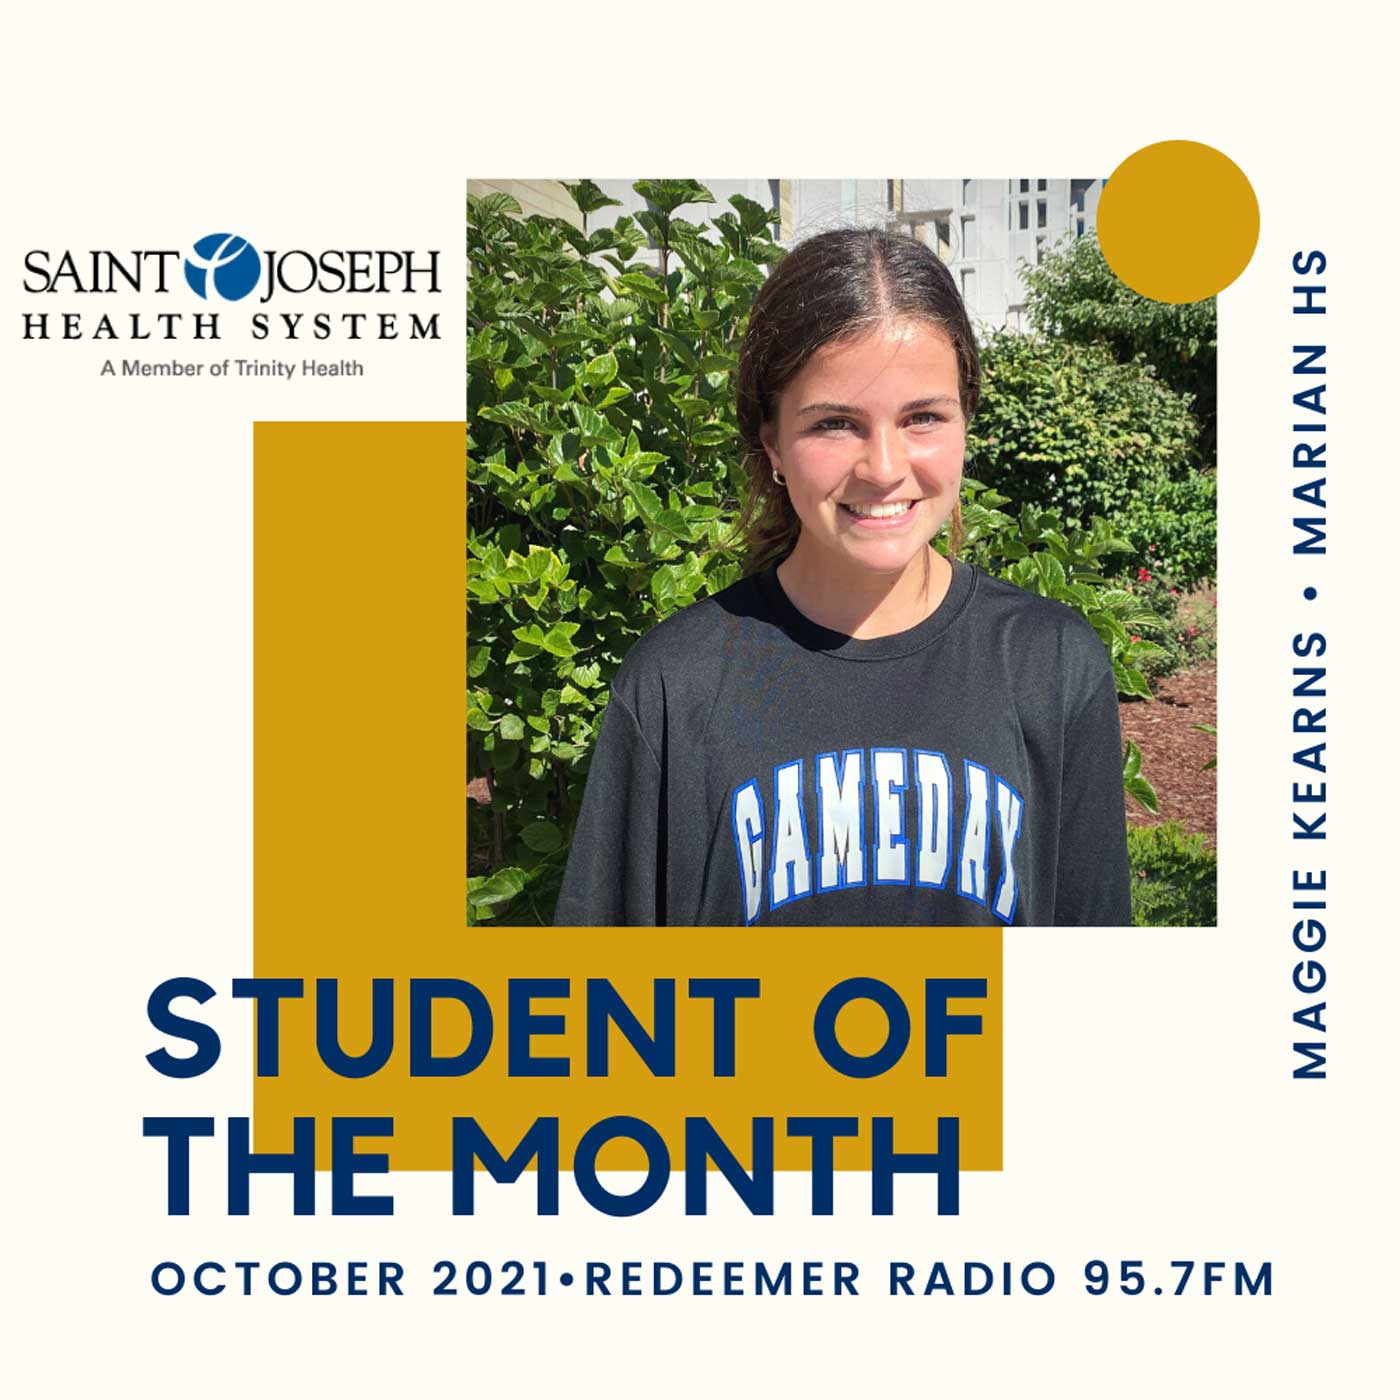 Artwork for podcast Student of the Month - Redeemer Radio